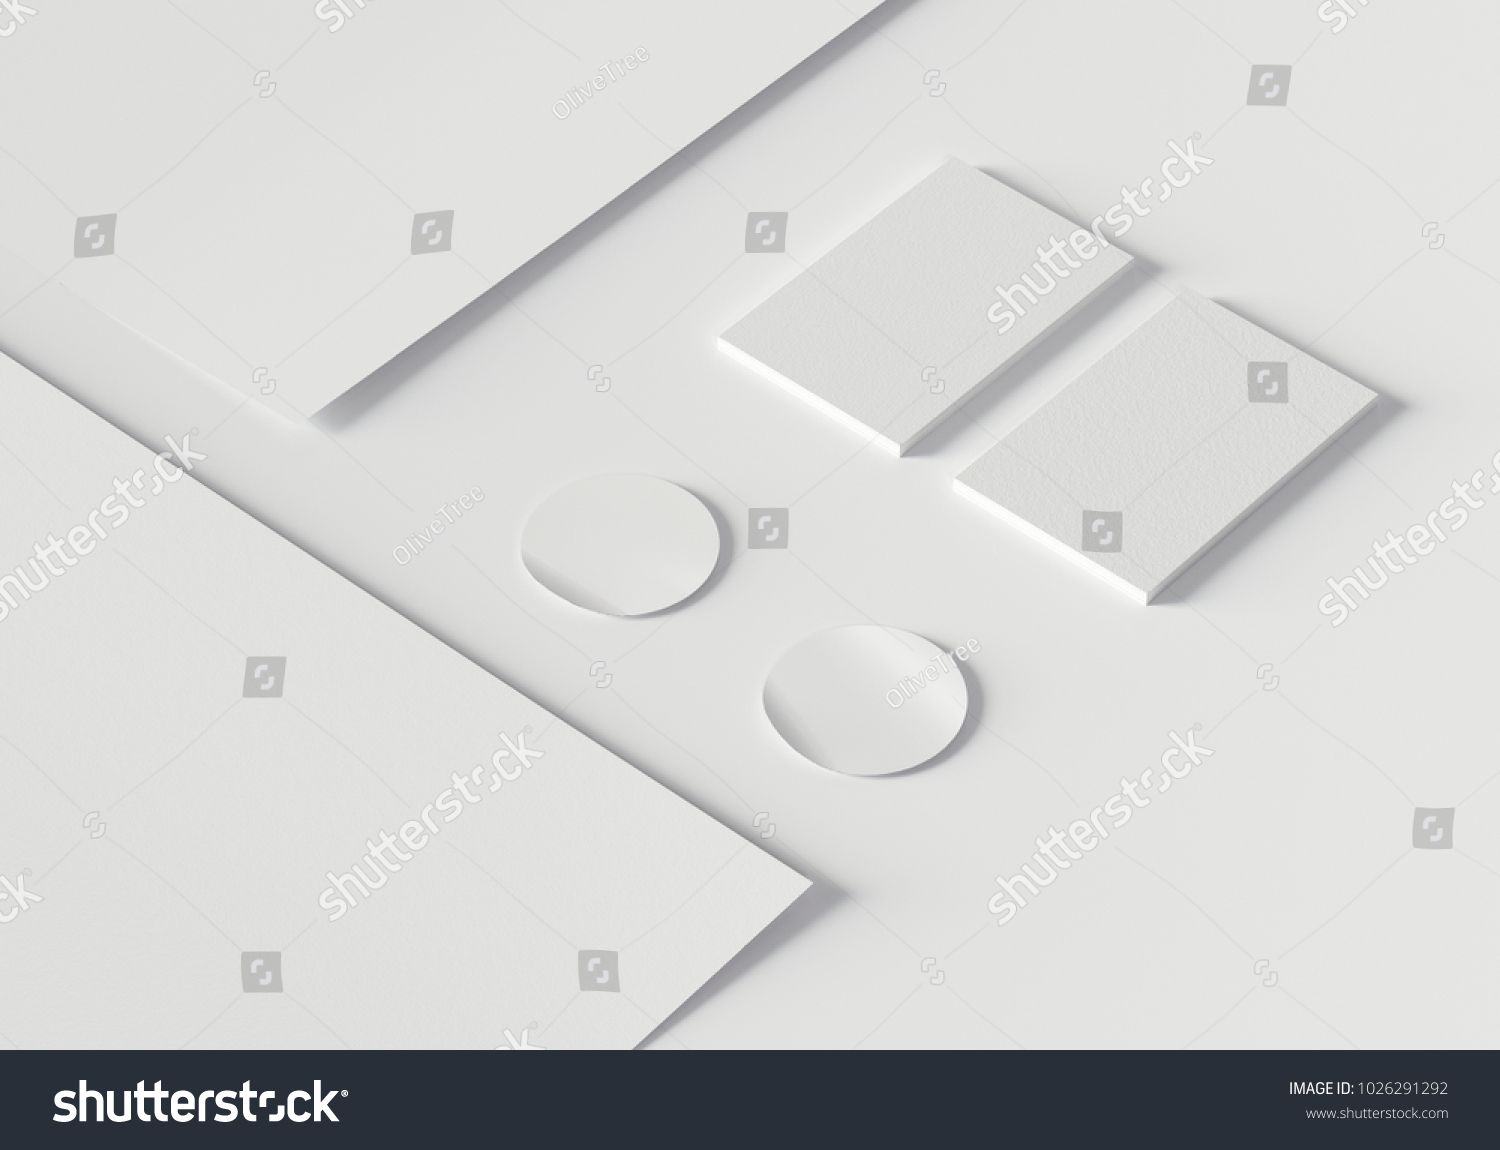 Branding Template Business Cards Stickers Paper Stock Illustration ...